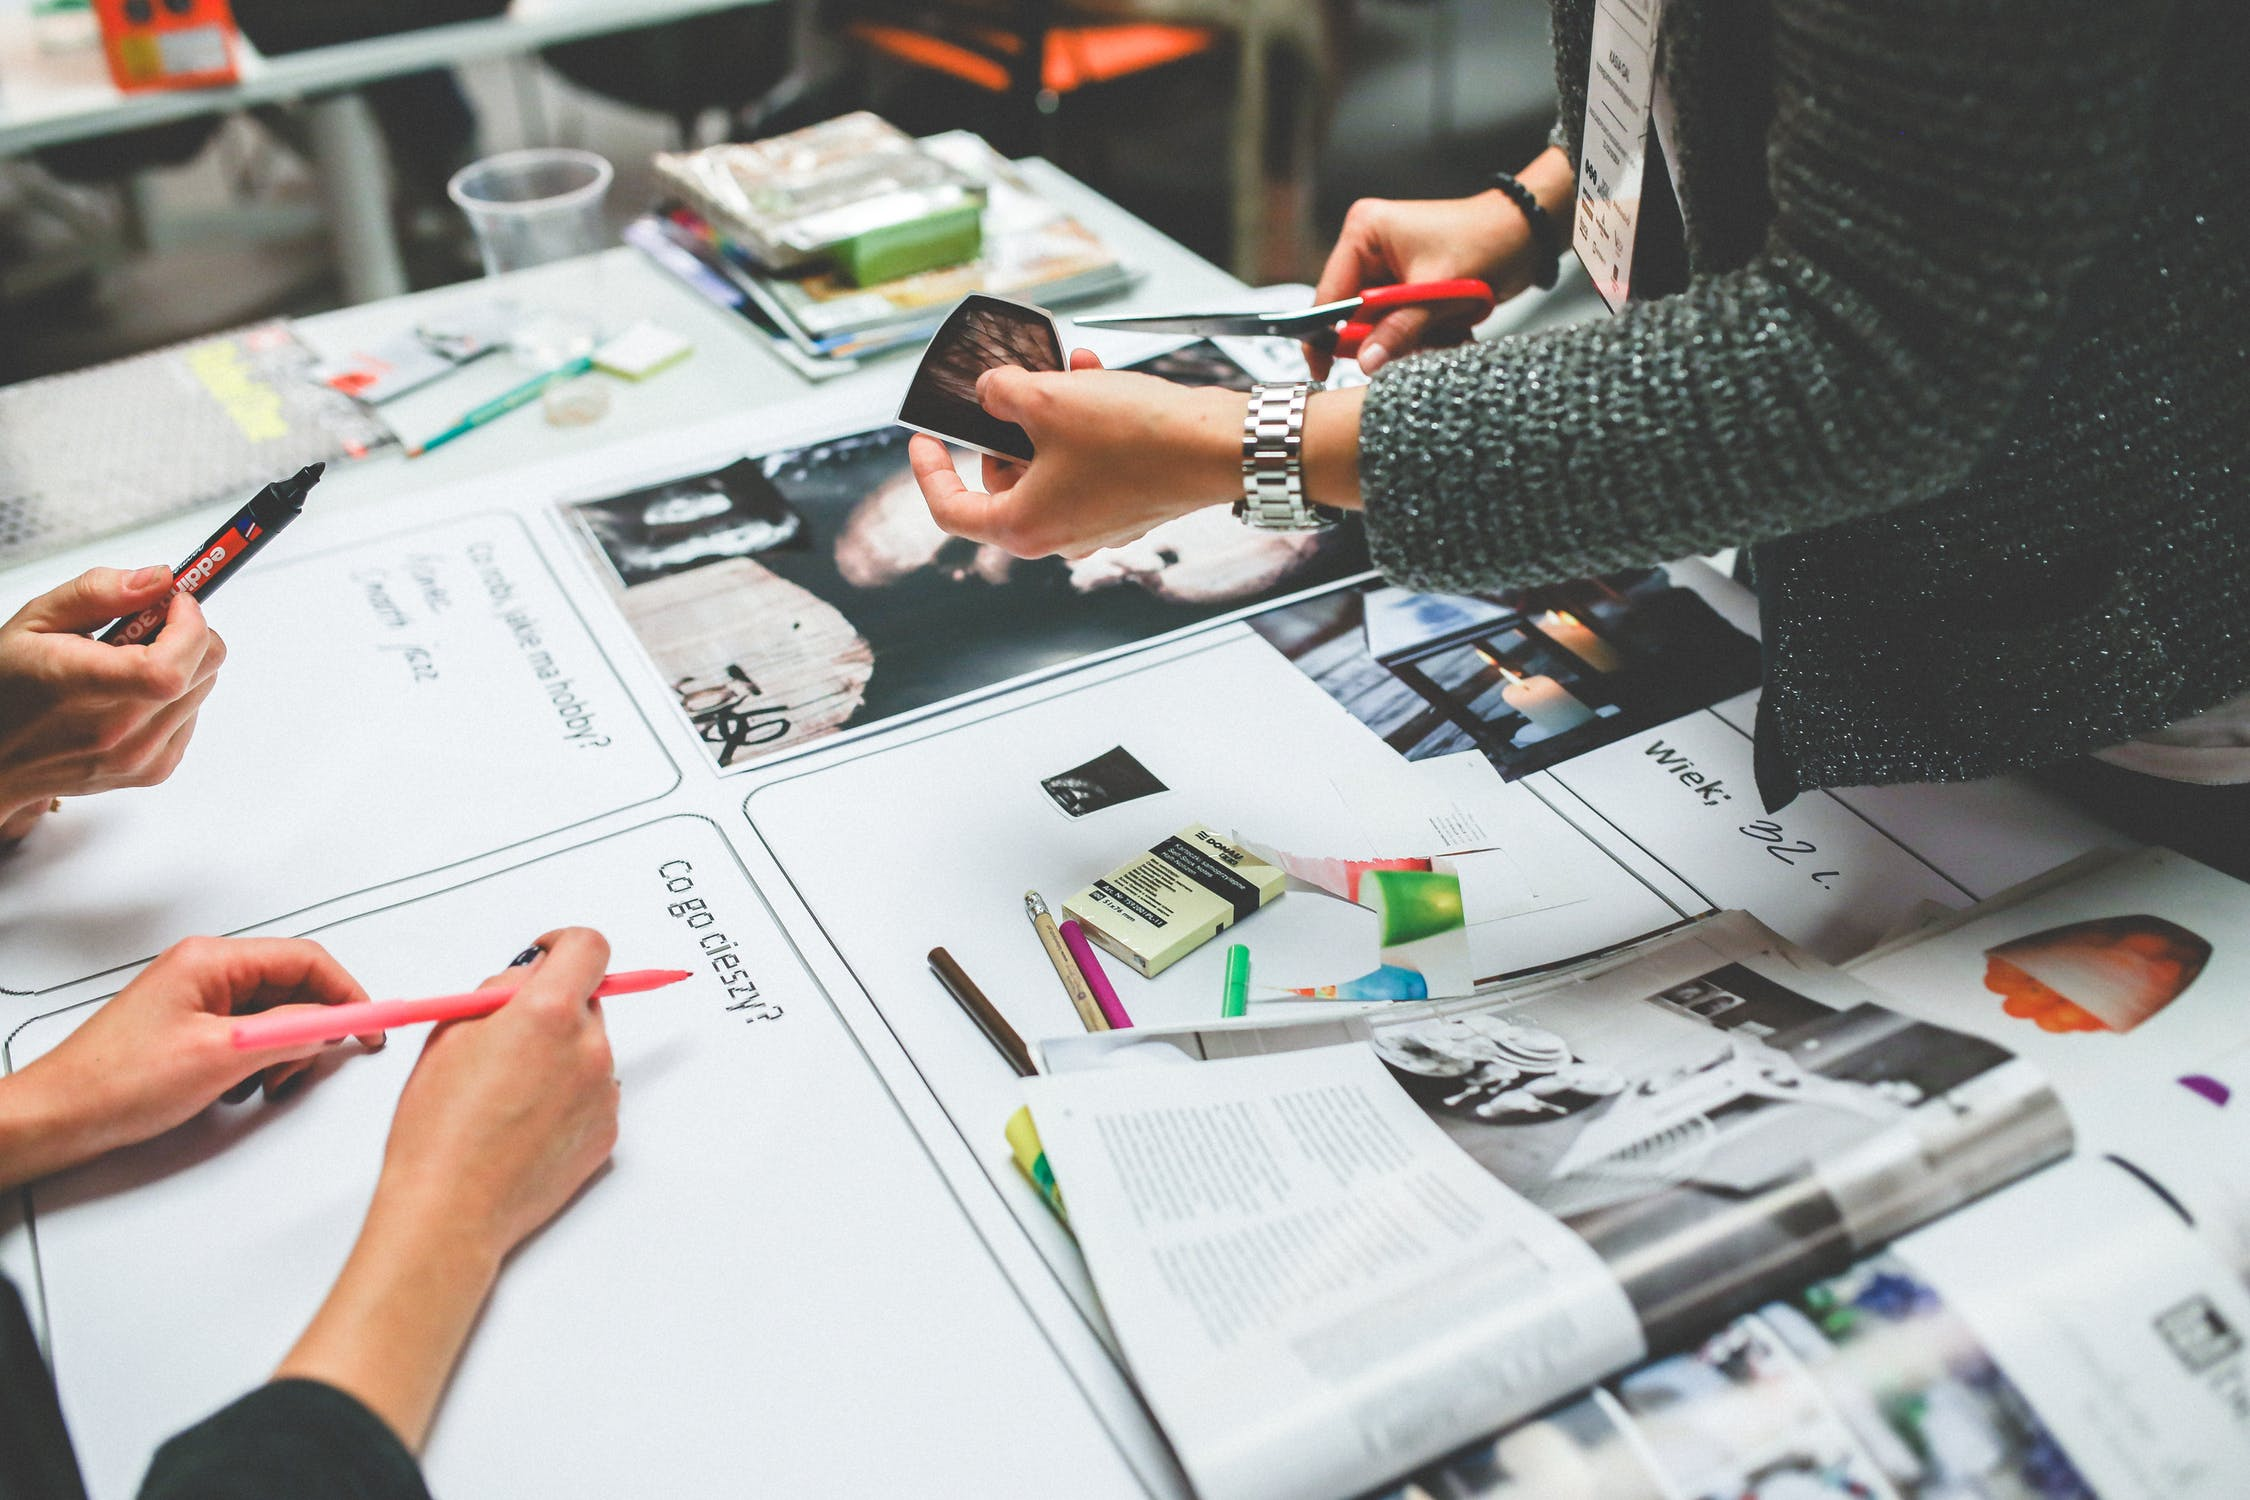 What is design thinking and how can it help your business grow?